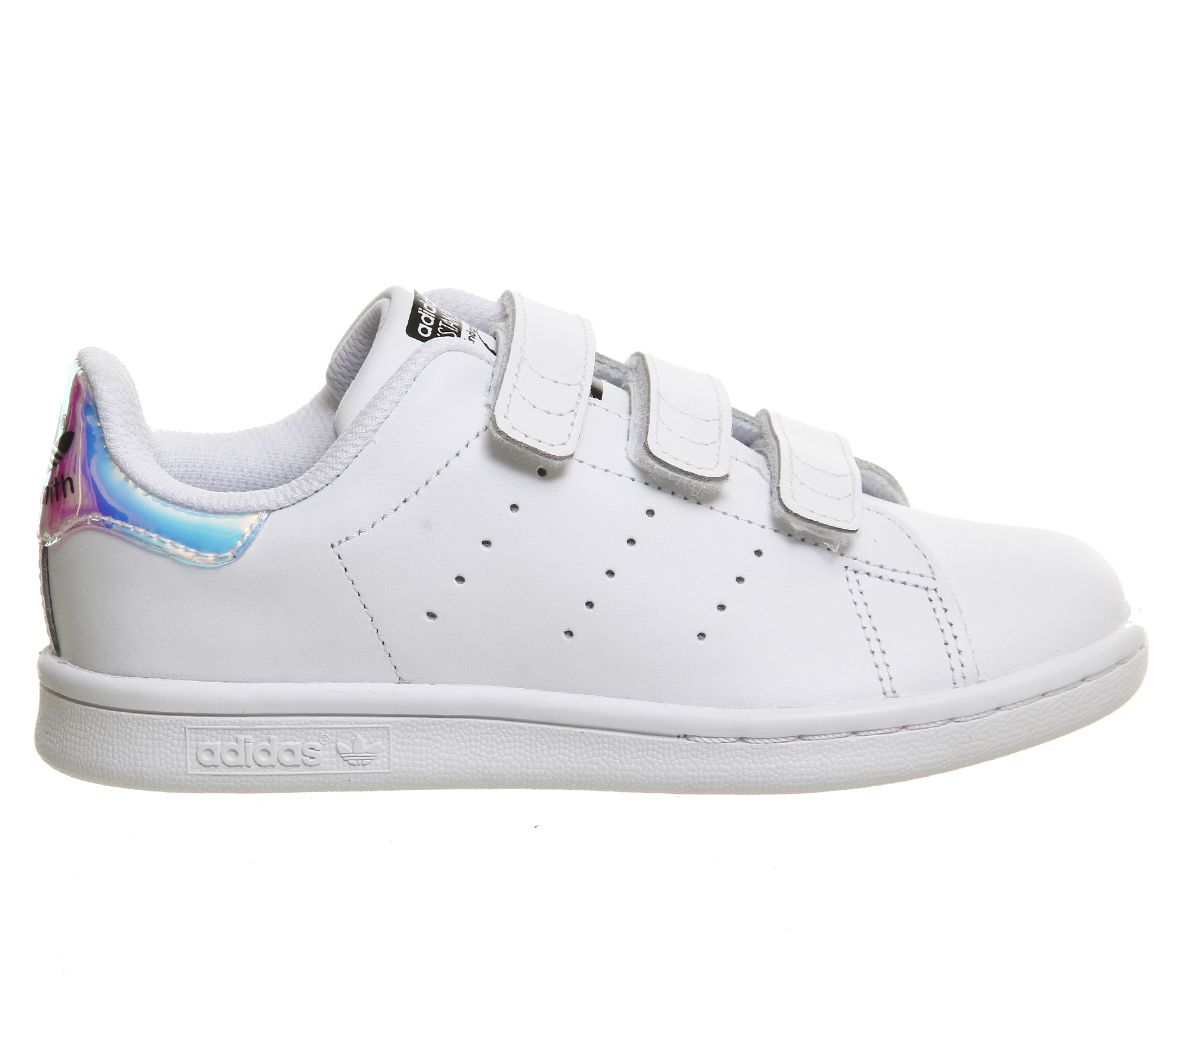 Details about Kids Adidas Stan Smith Cf Ps 10 2 Metallic Silver Kids